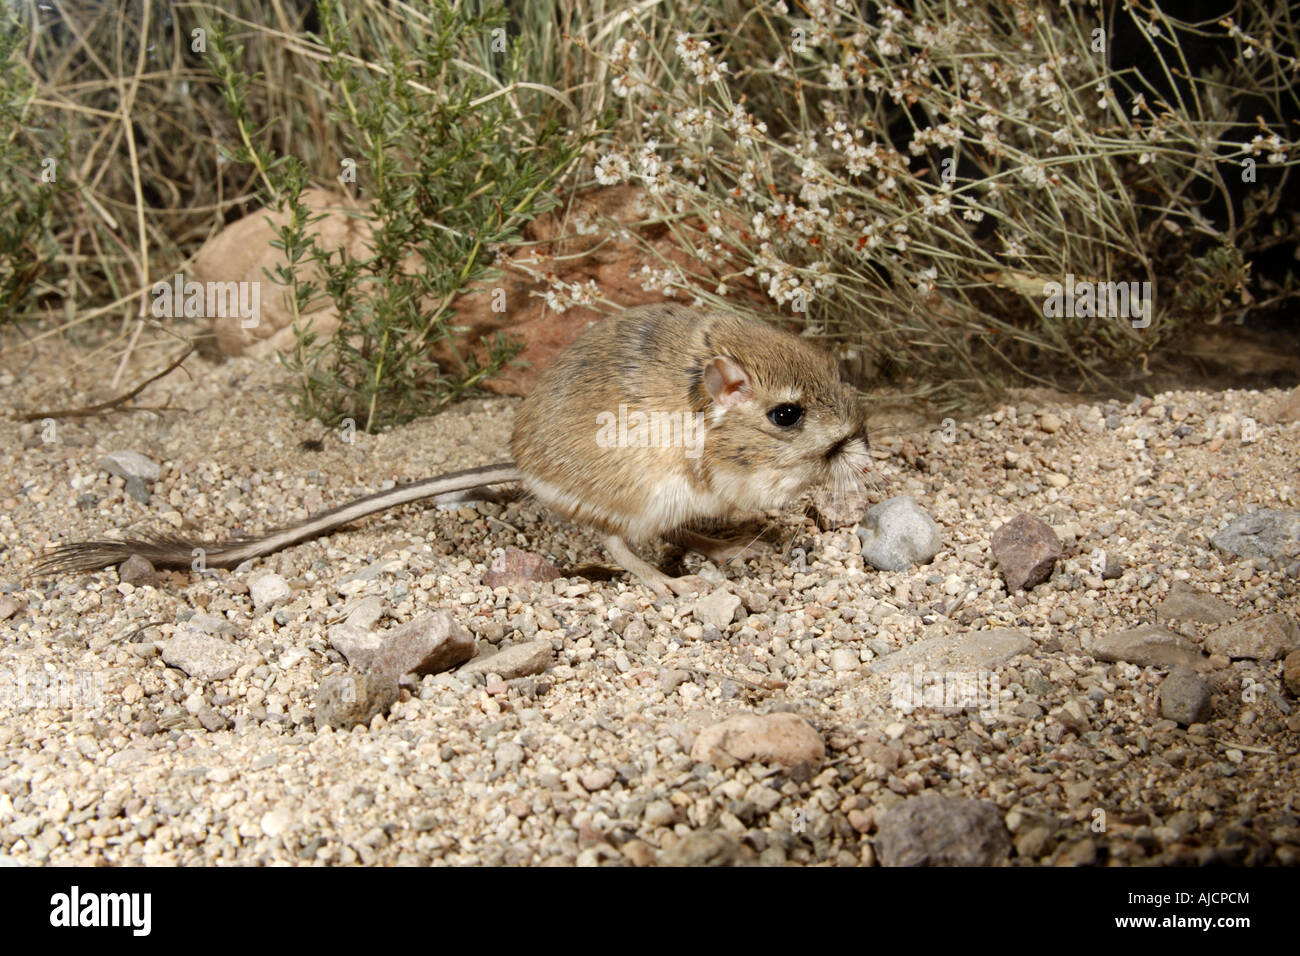 Kangaroo Rat Arizona Stock Photos & Kangaroo Rat Arizona ...